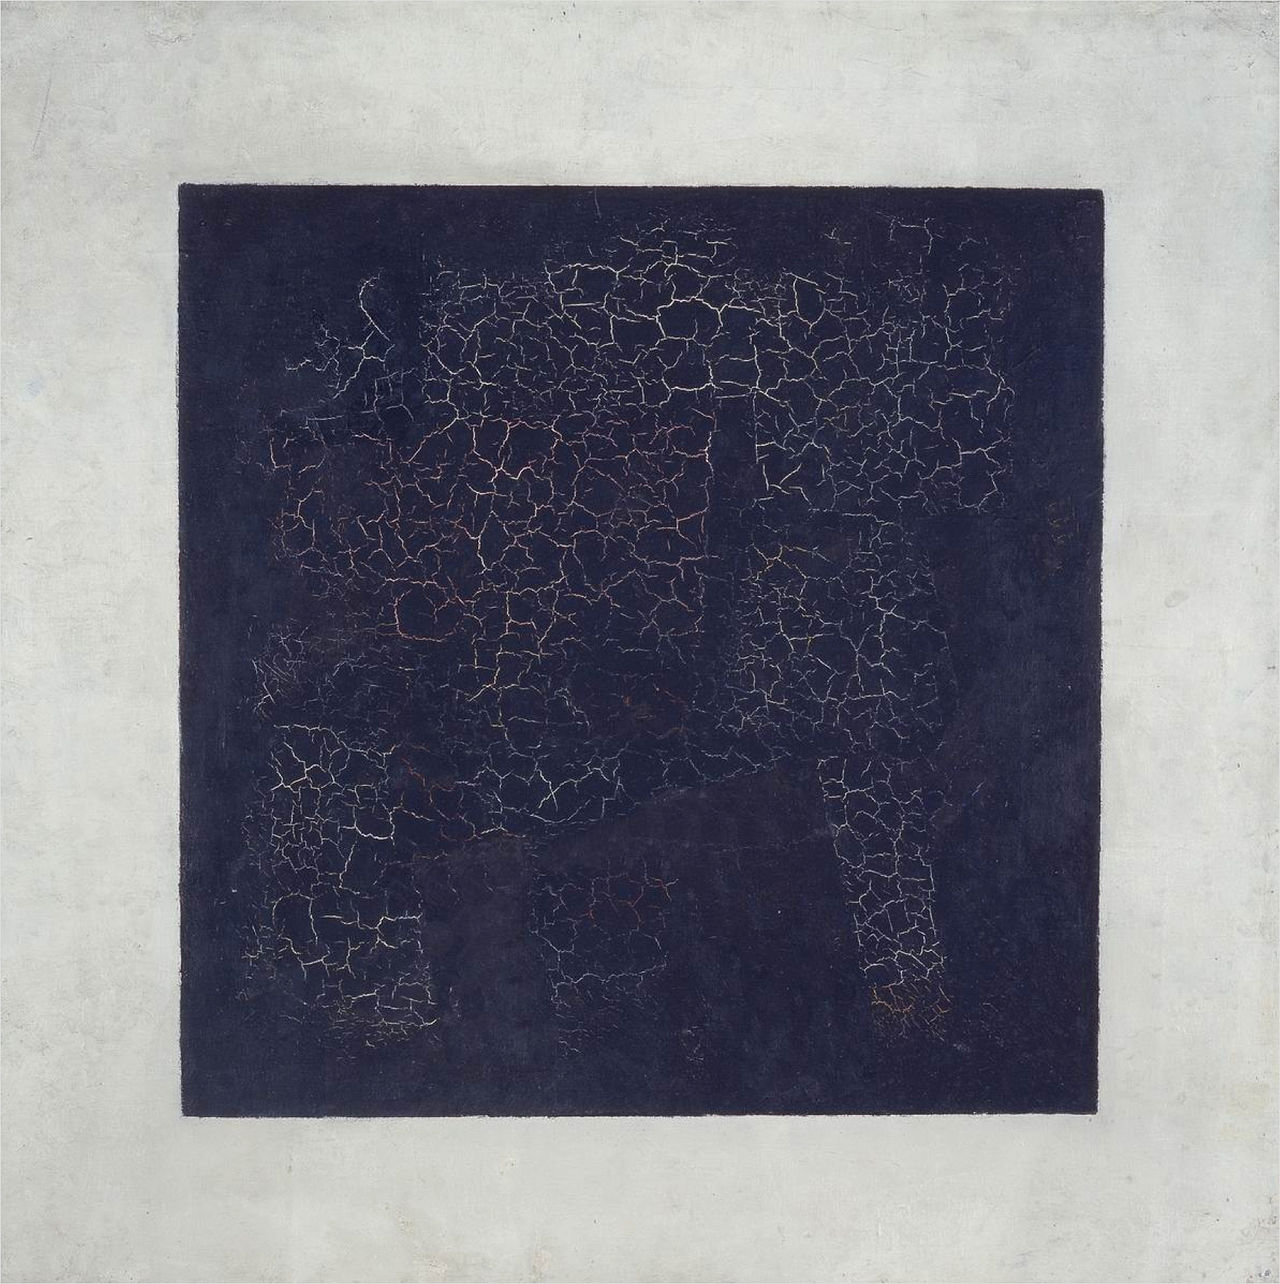 1280px-Kazimir_Malevich,_1915,_Black_Suprematic_Square,_oil_on_linen_canvas,_79.5_x_79.5_cm,_Tretyakov_Gallery,_Moscow